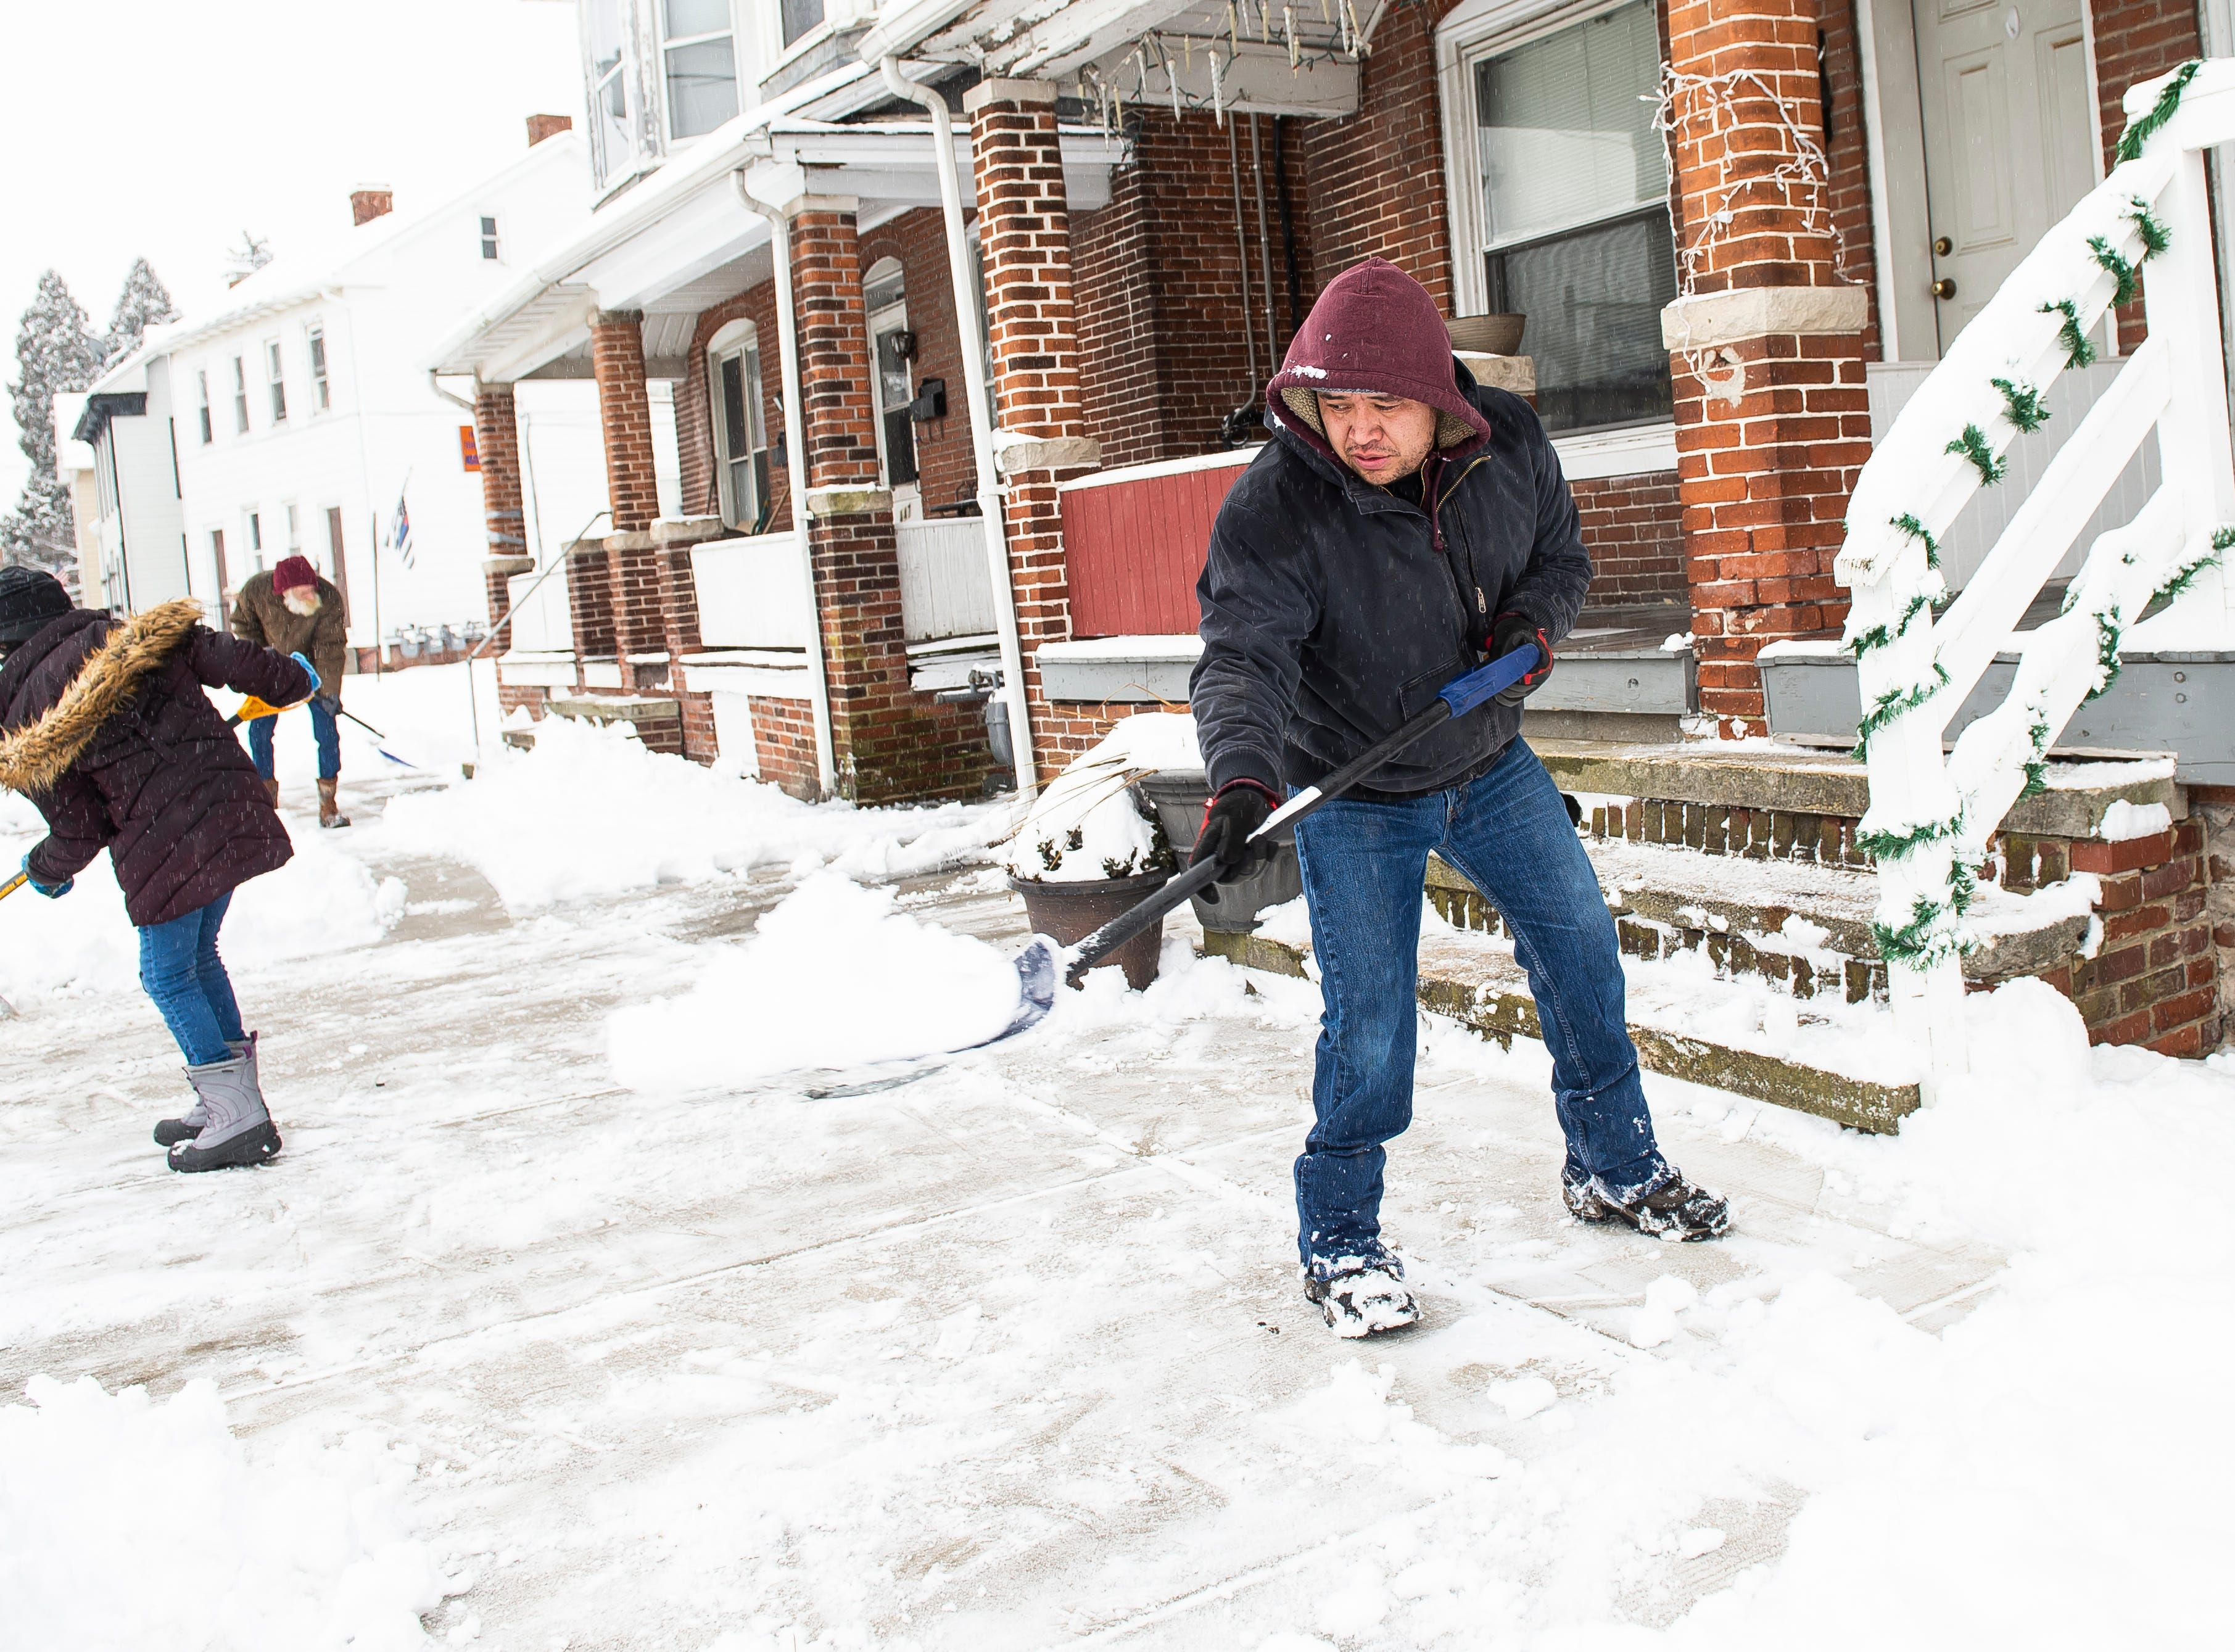 Alberto Diaz and his daughter, Athena Diaz, shovel snow from a sidewalk along York Street in Hanover Borough Wednesday, February 20, 2019. The National Weather Service reported that Hanover received four inches of snow as of 1:31 pm.